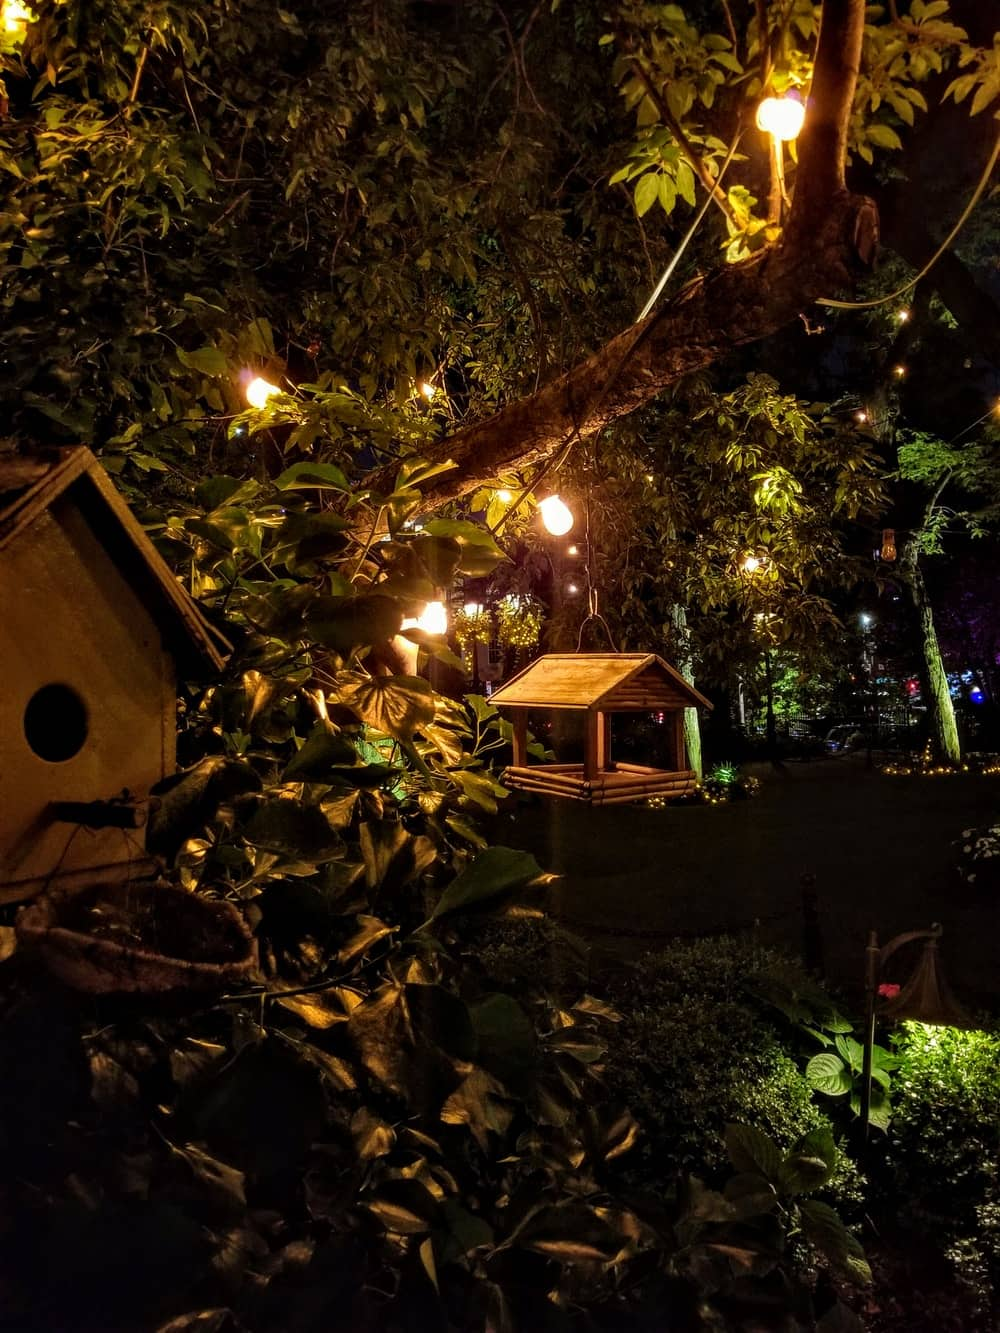 Extremely Easy Yard Lighting Tips. Night at the landplot with mangers